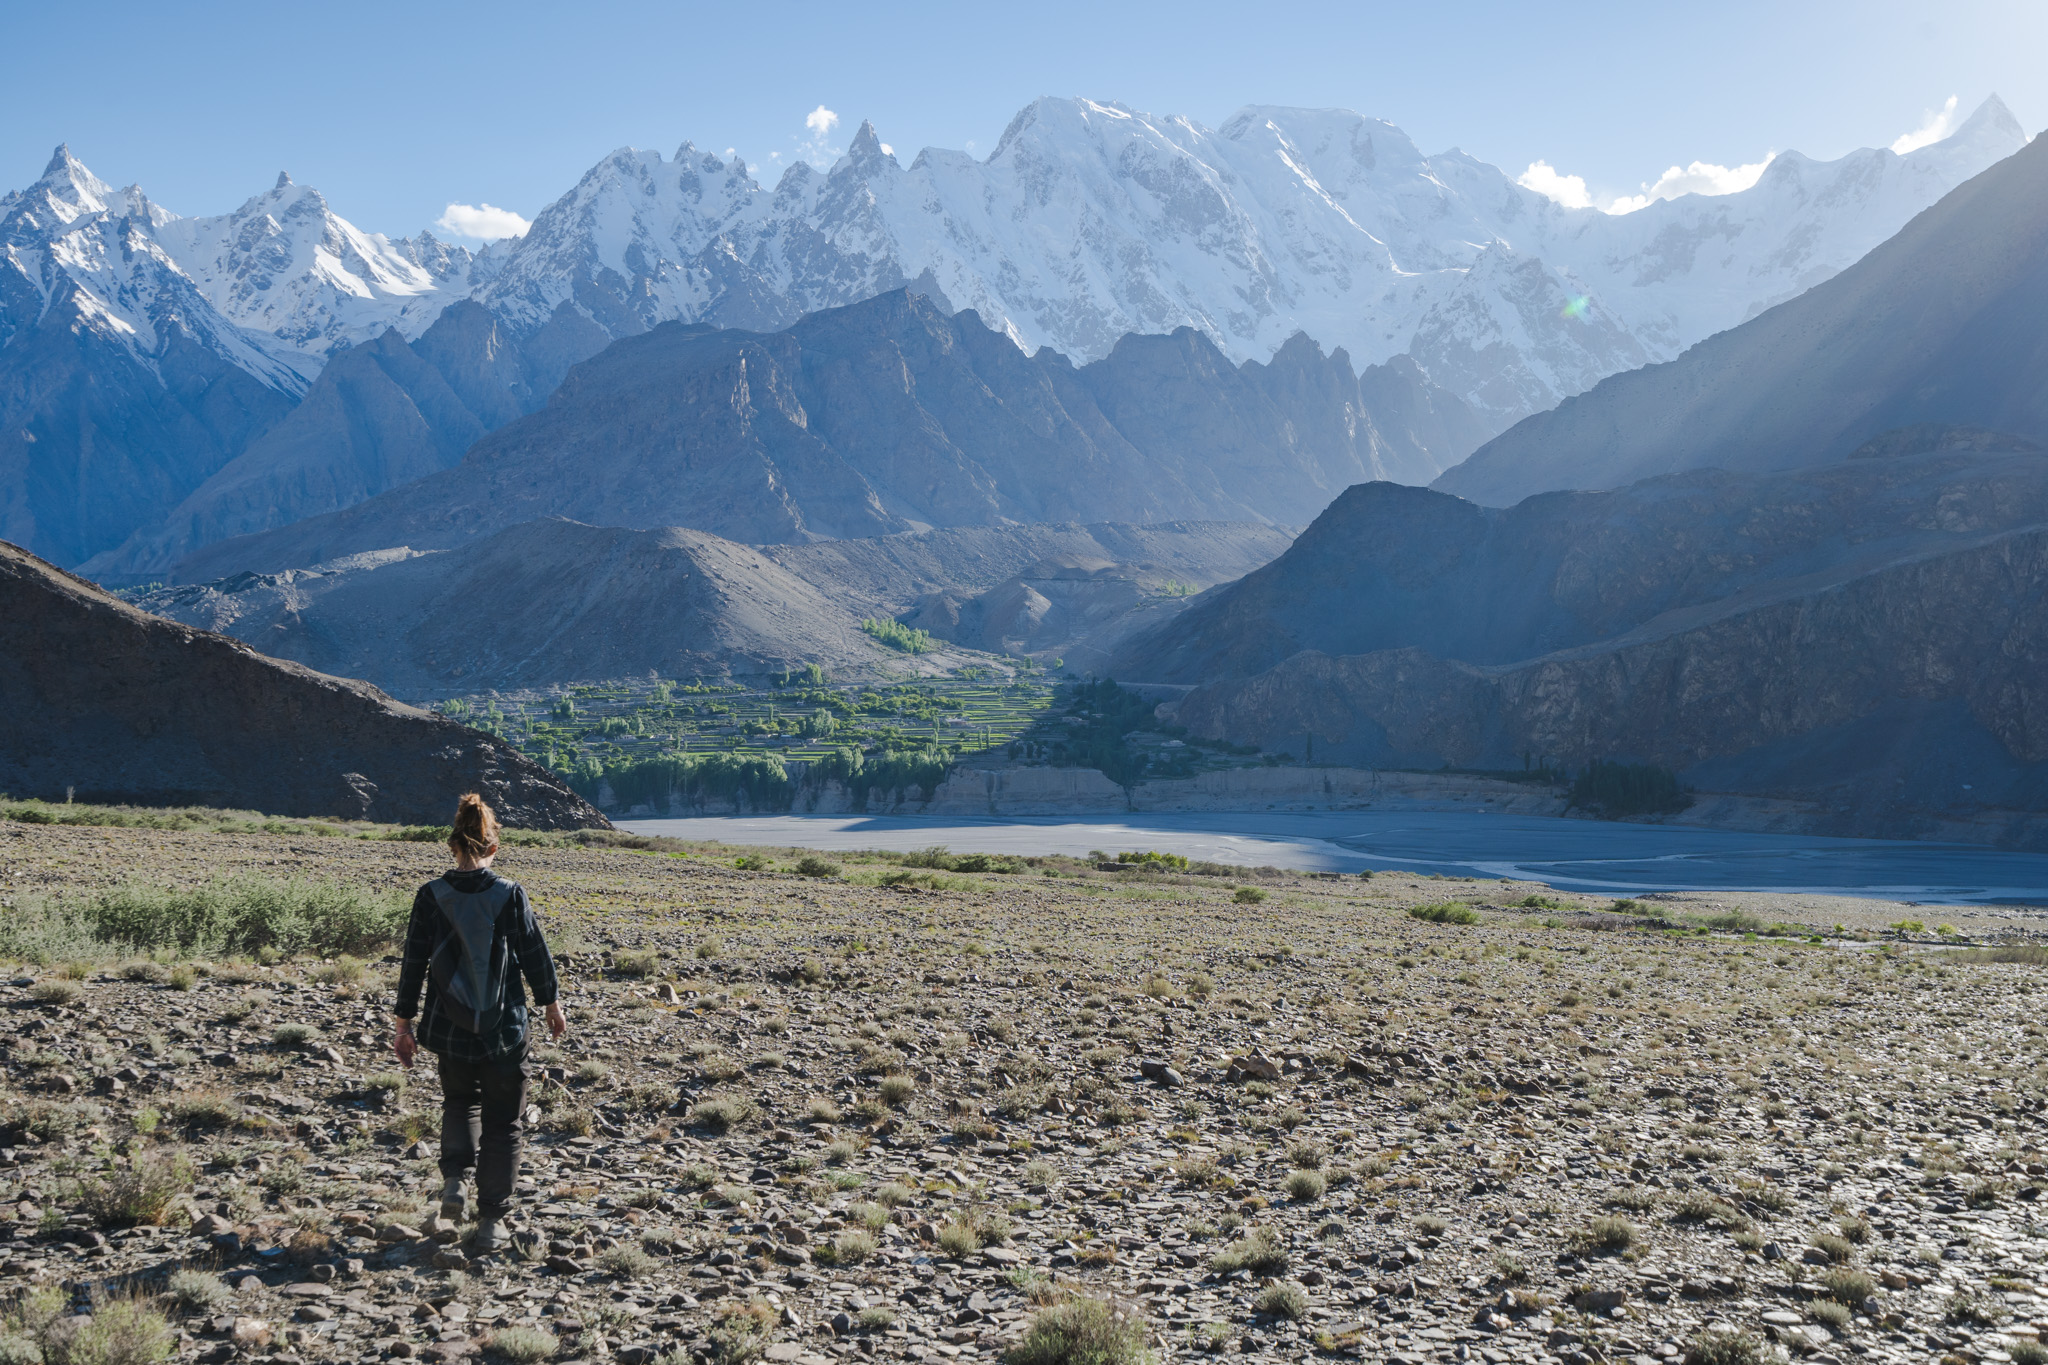 Views on the hike from the Passu to Hussaini Bridge